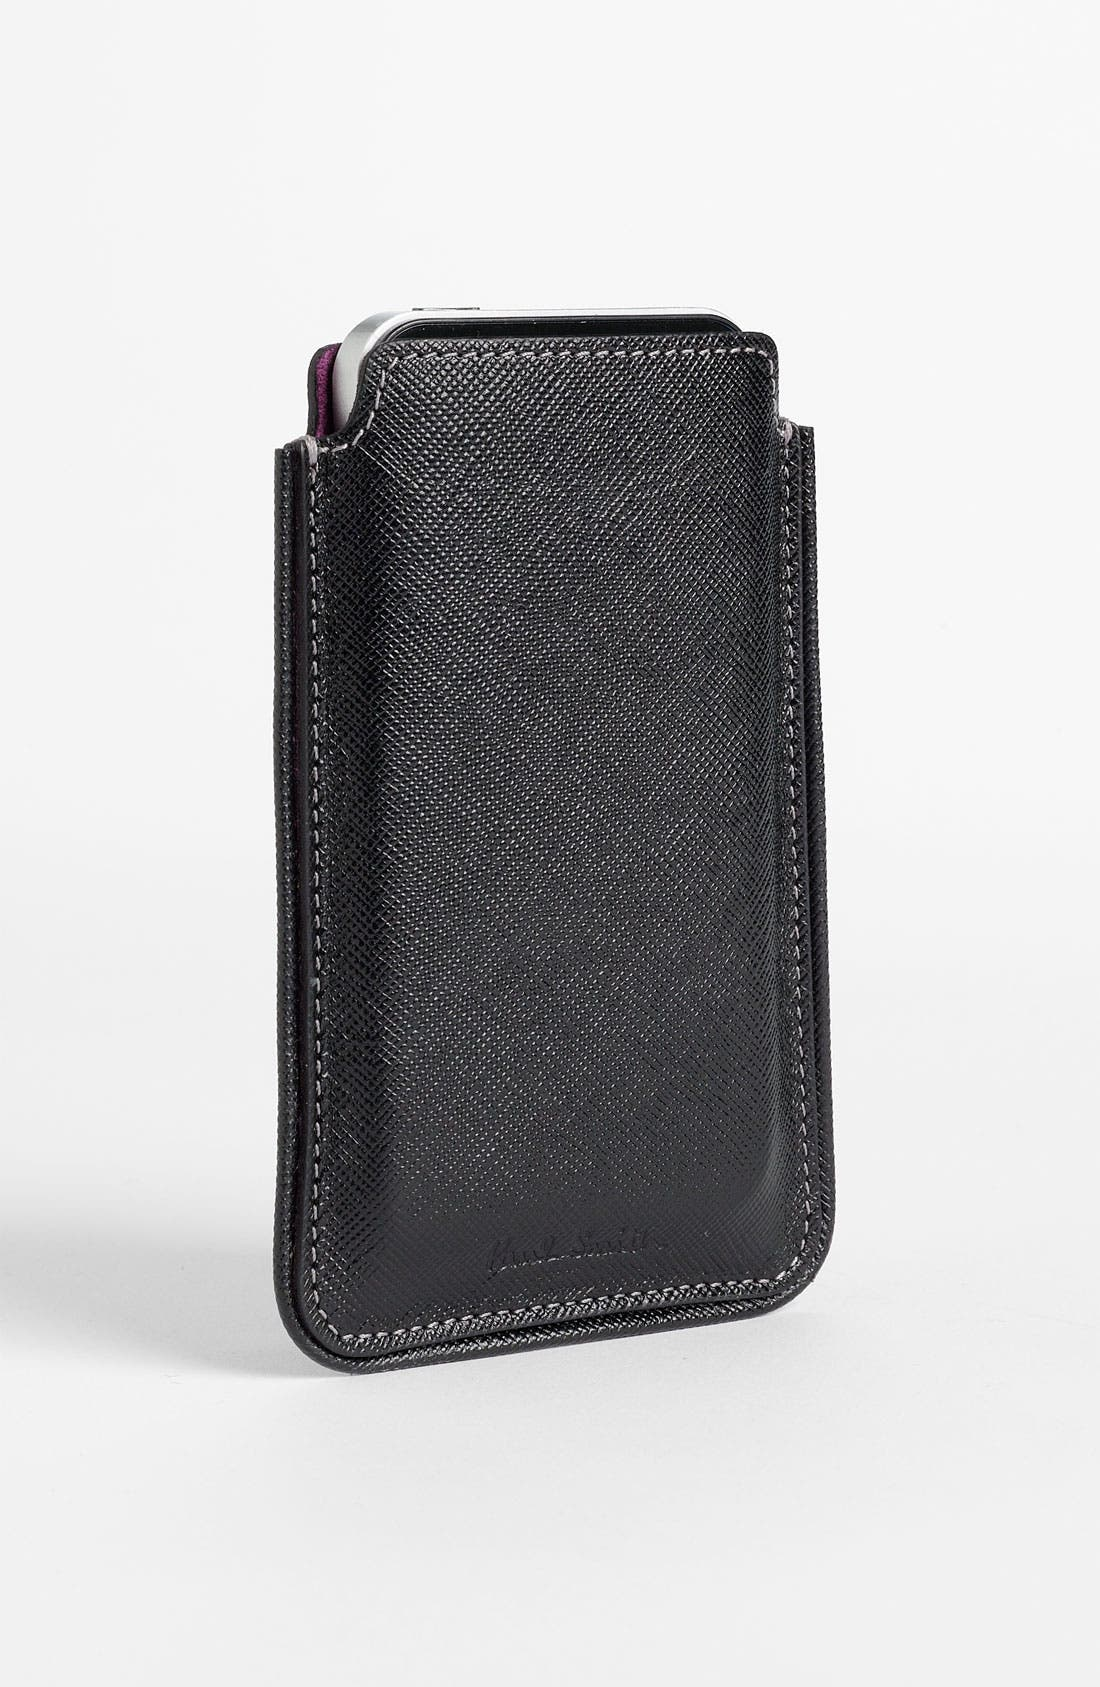 Main Image - Paul Smith Accessories Leather iPhone Case